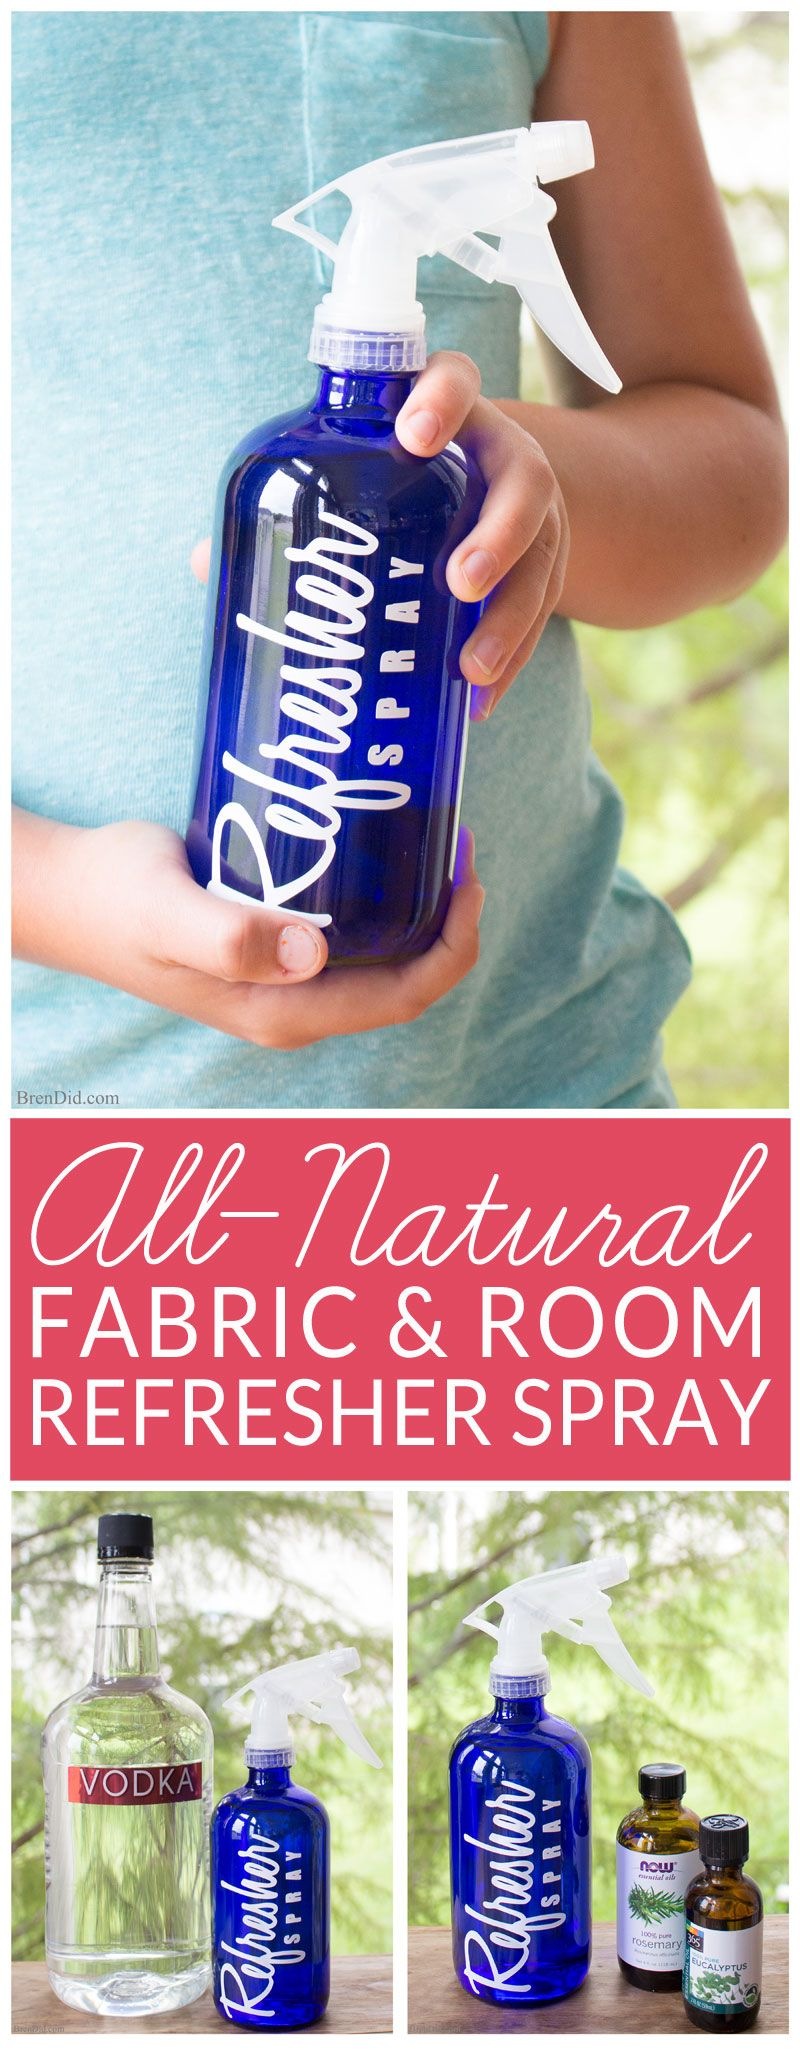 homemade air freshener for fabric and rooms fabric refresher